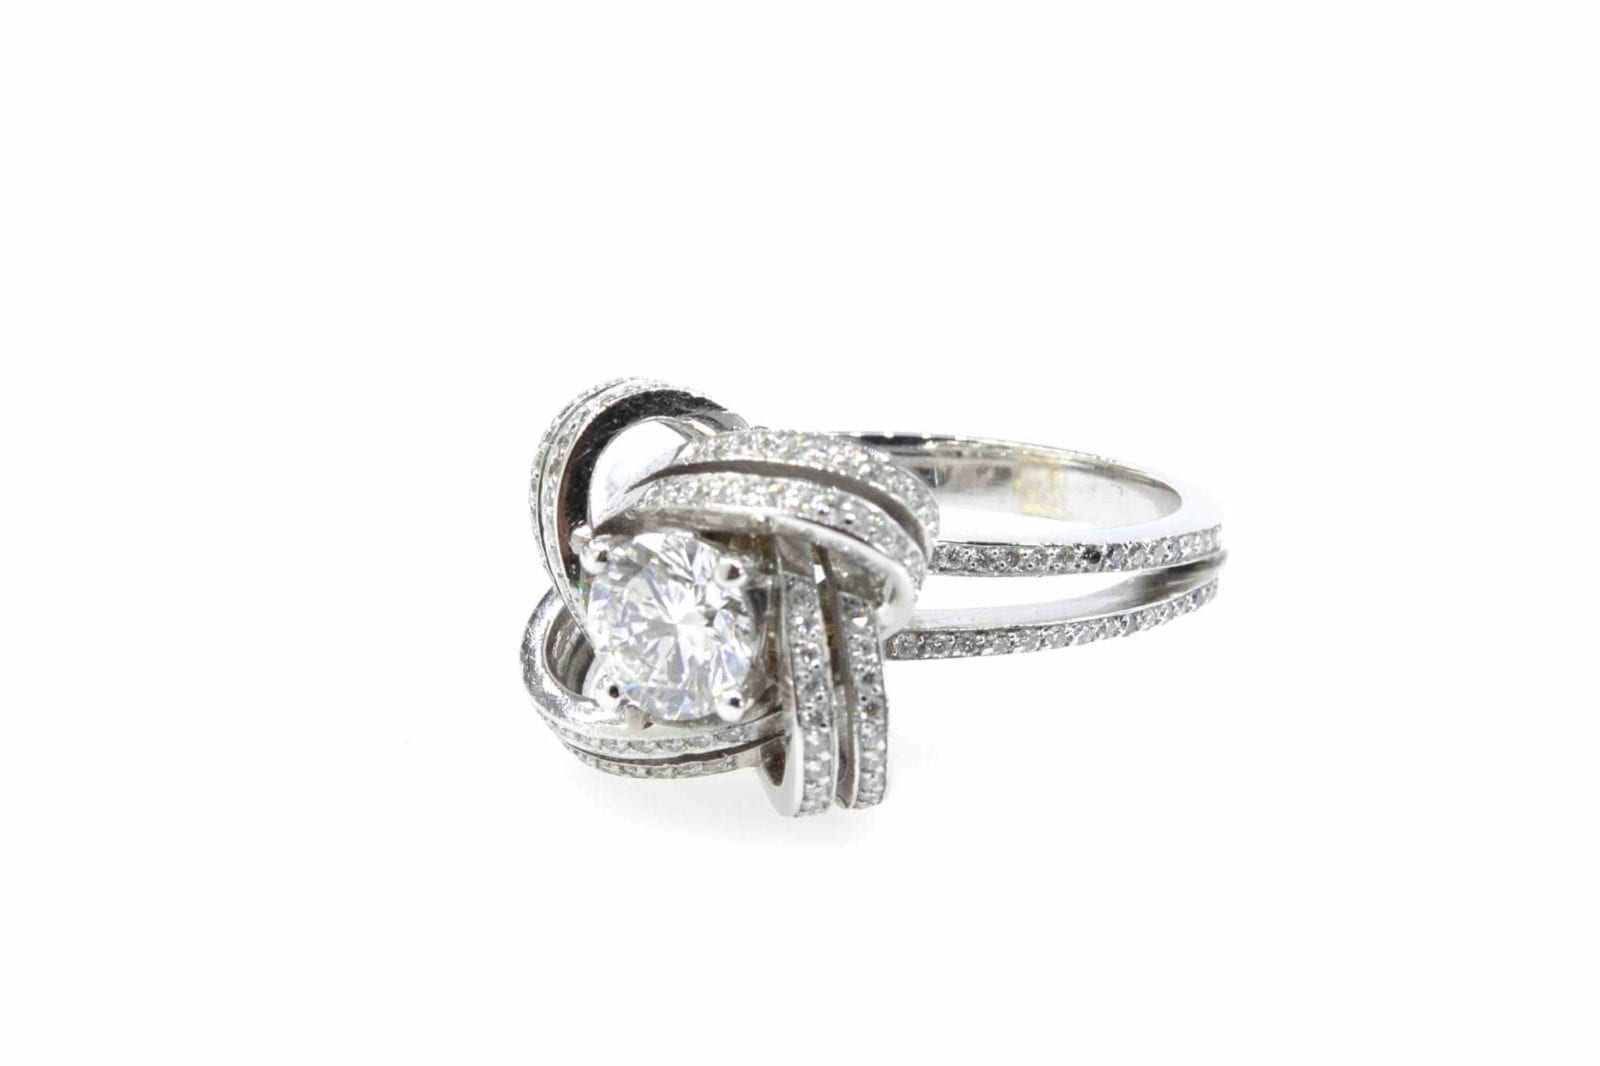 Bague diamants en or blanc 18k